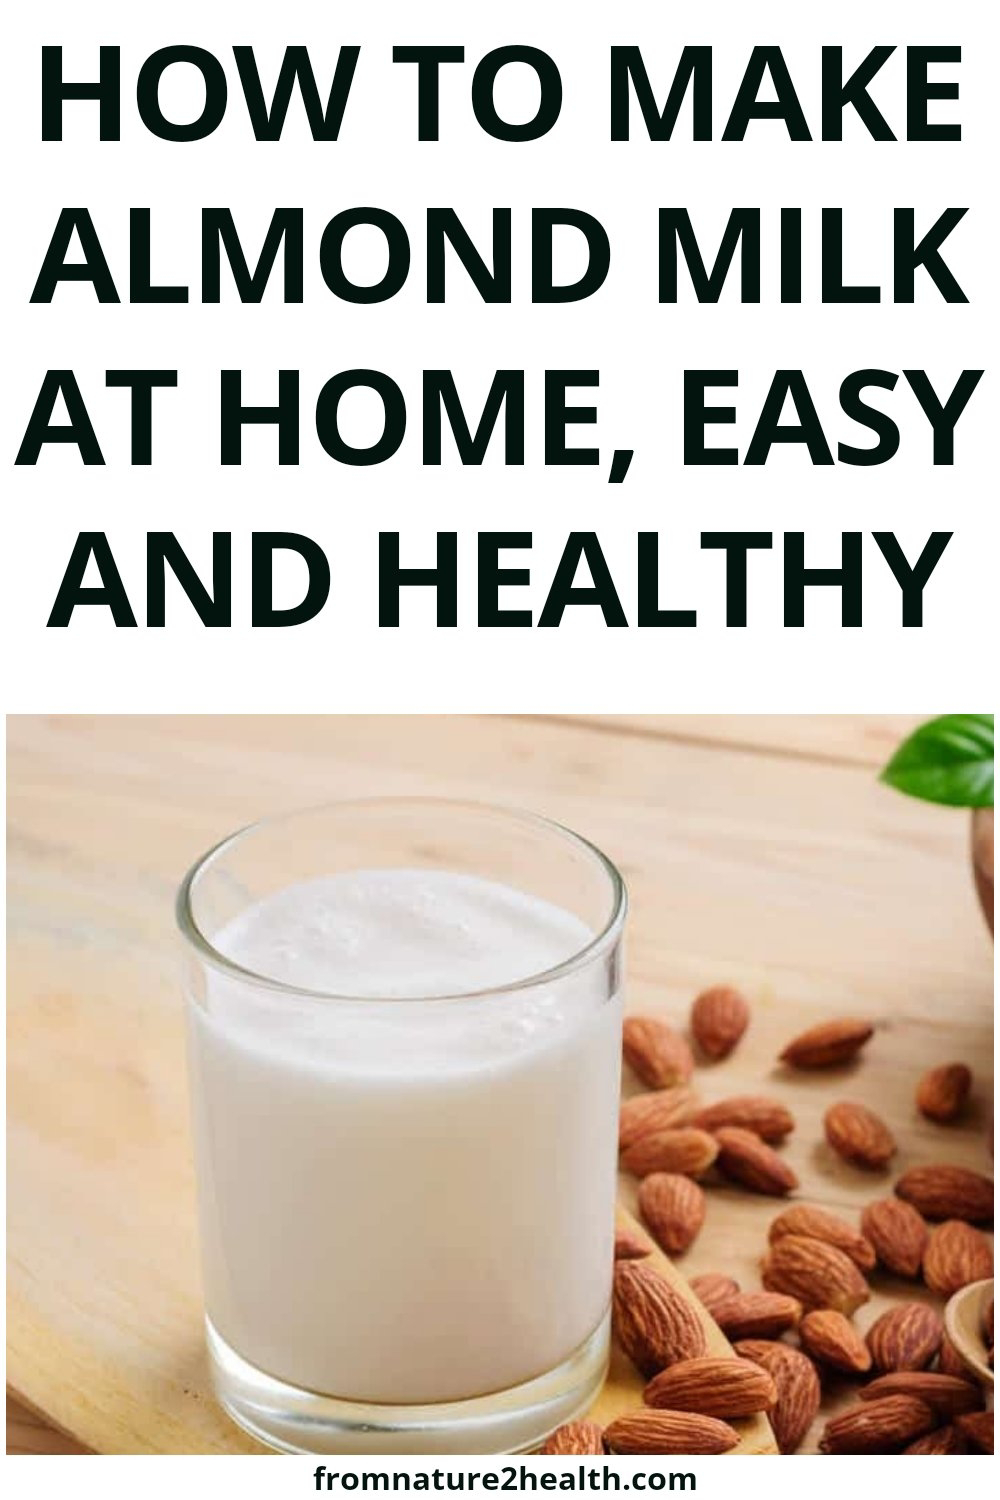 How to Make Almond Milk at Home, Easy and Healthy